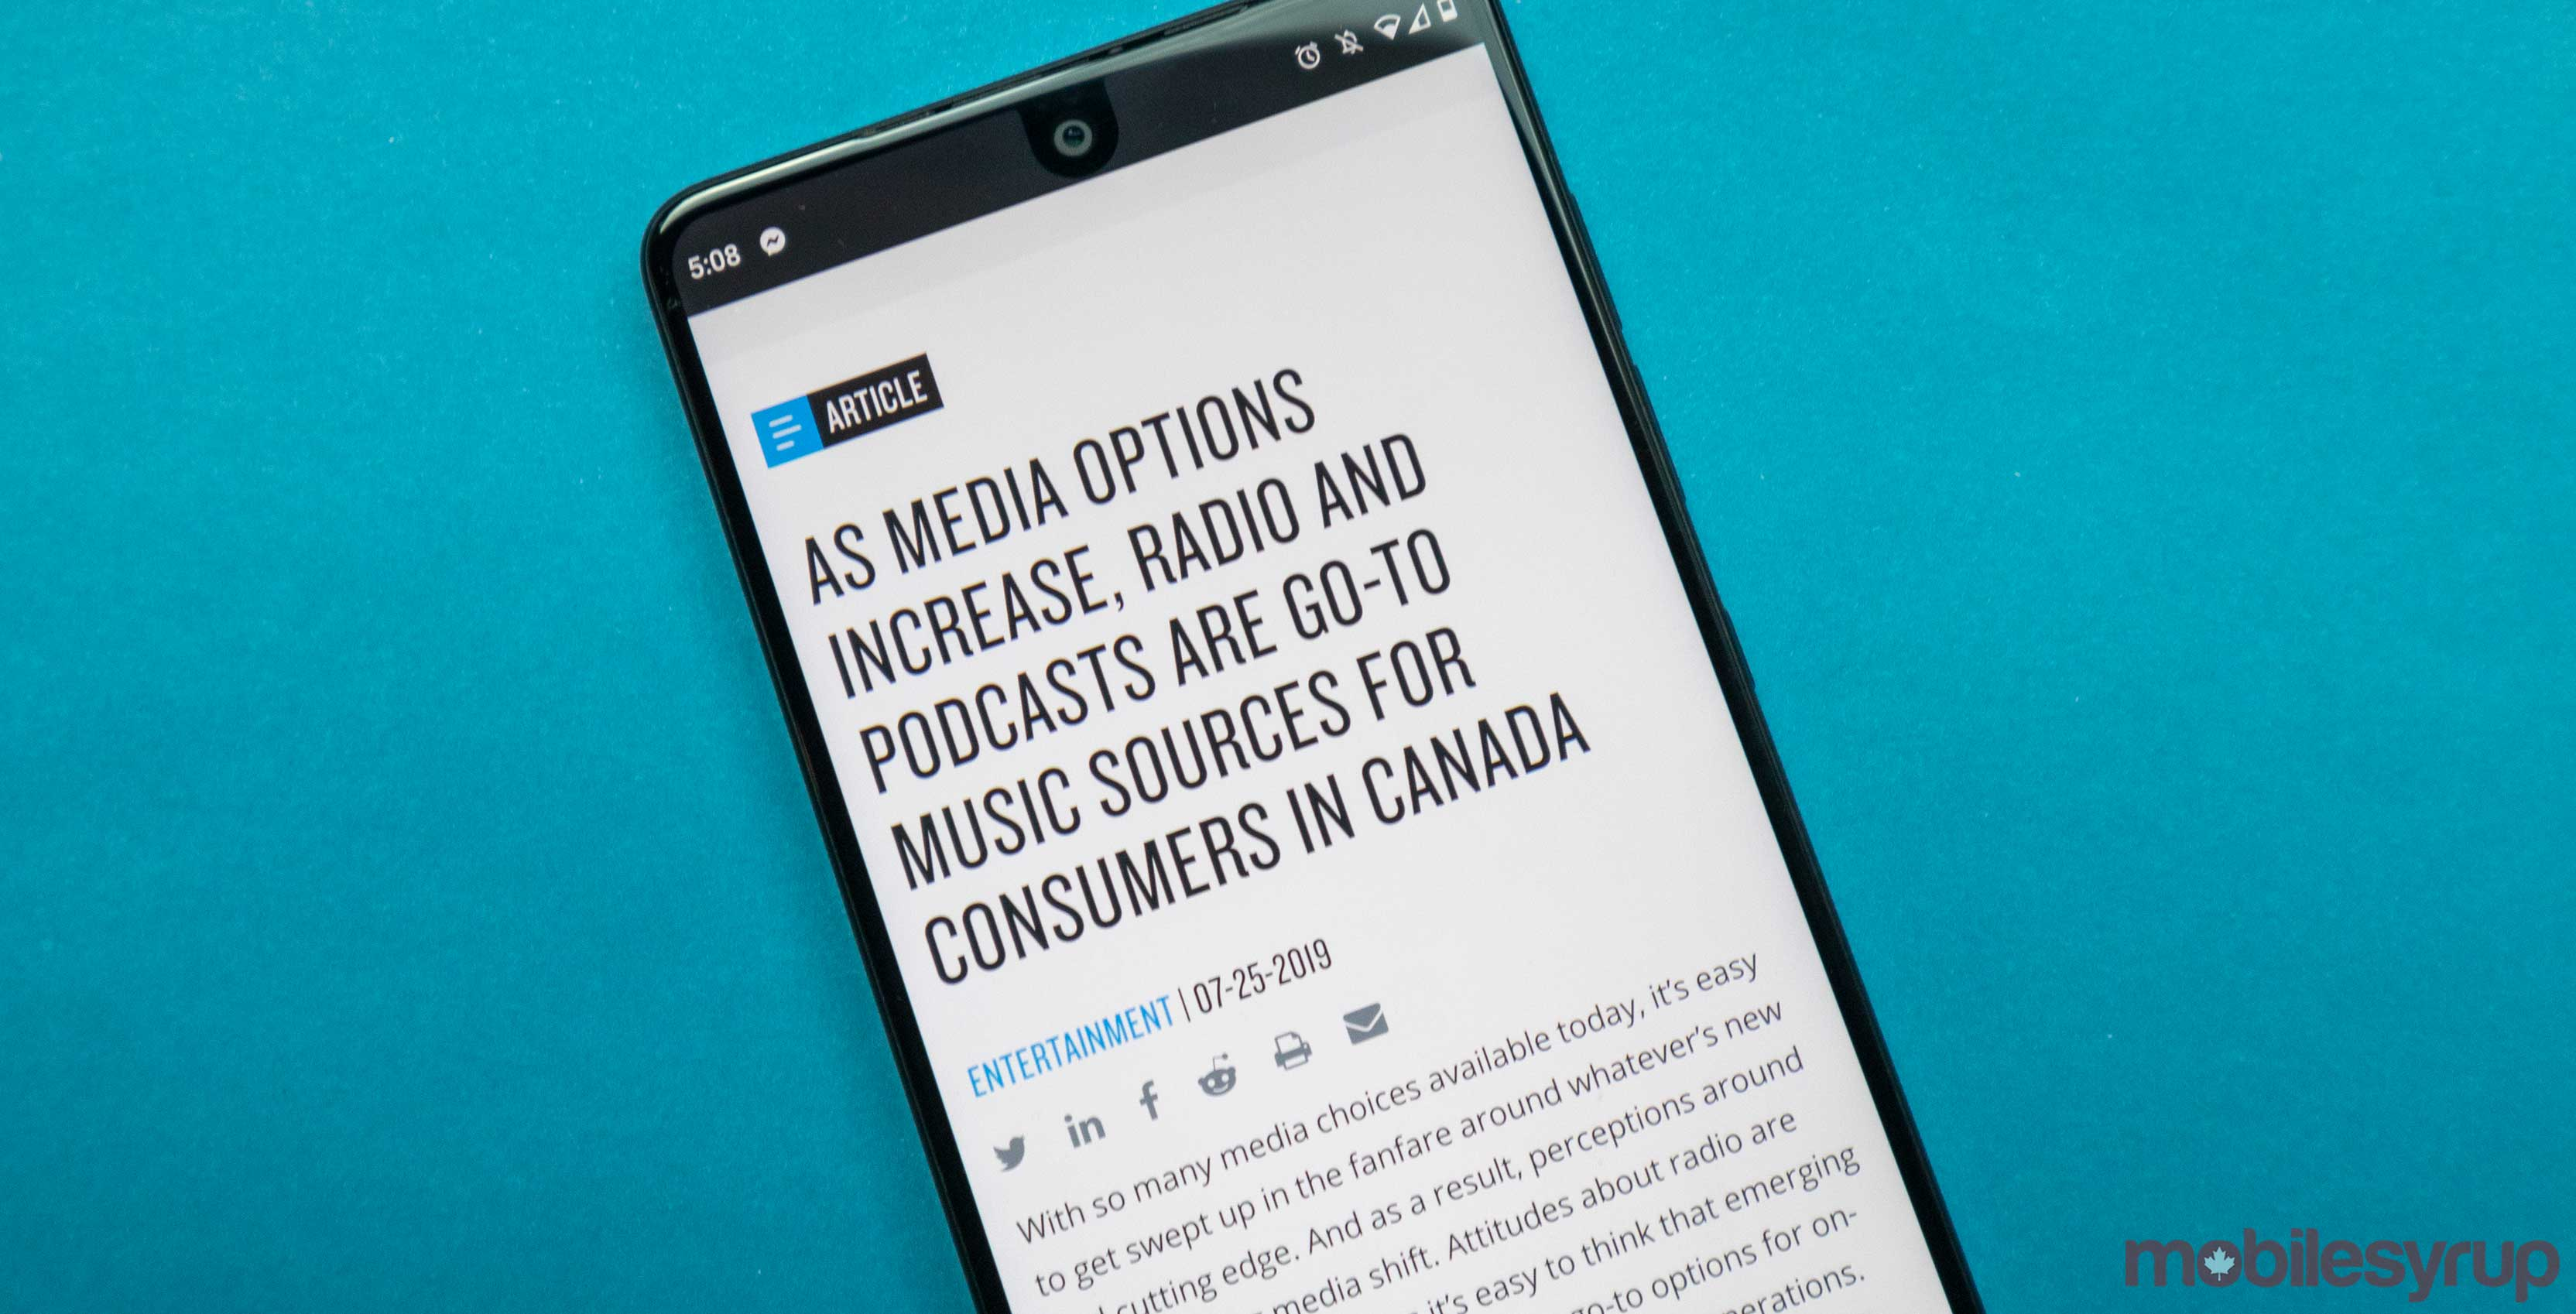 Canadians listen to radio and podcasts more than streaming services